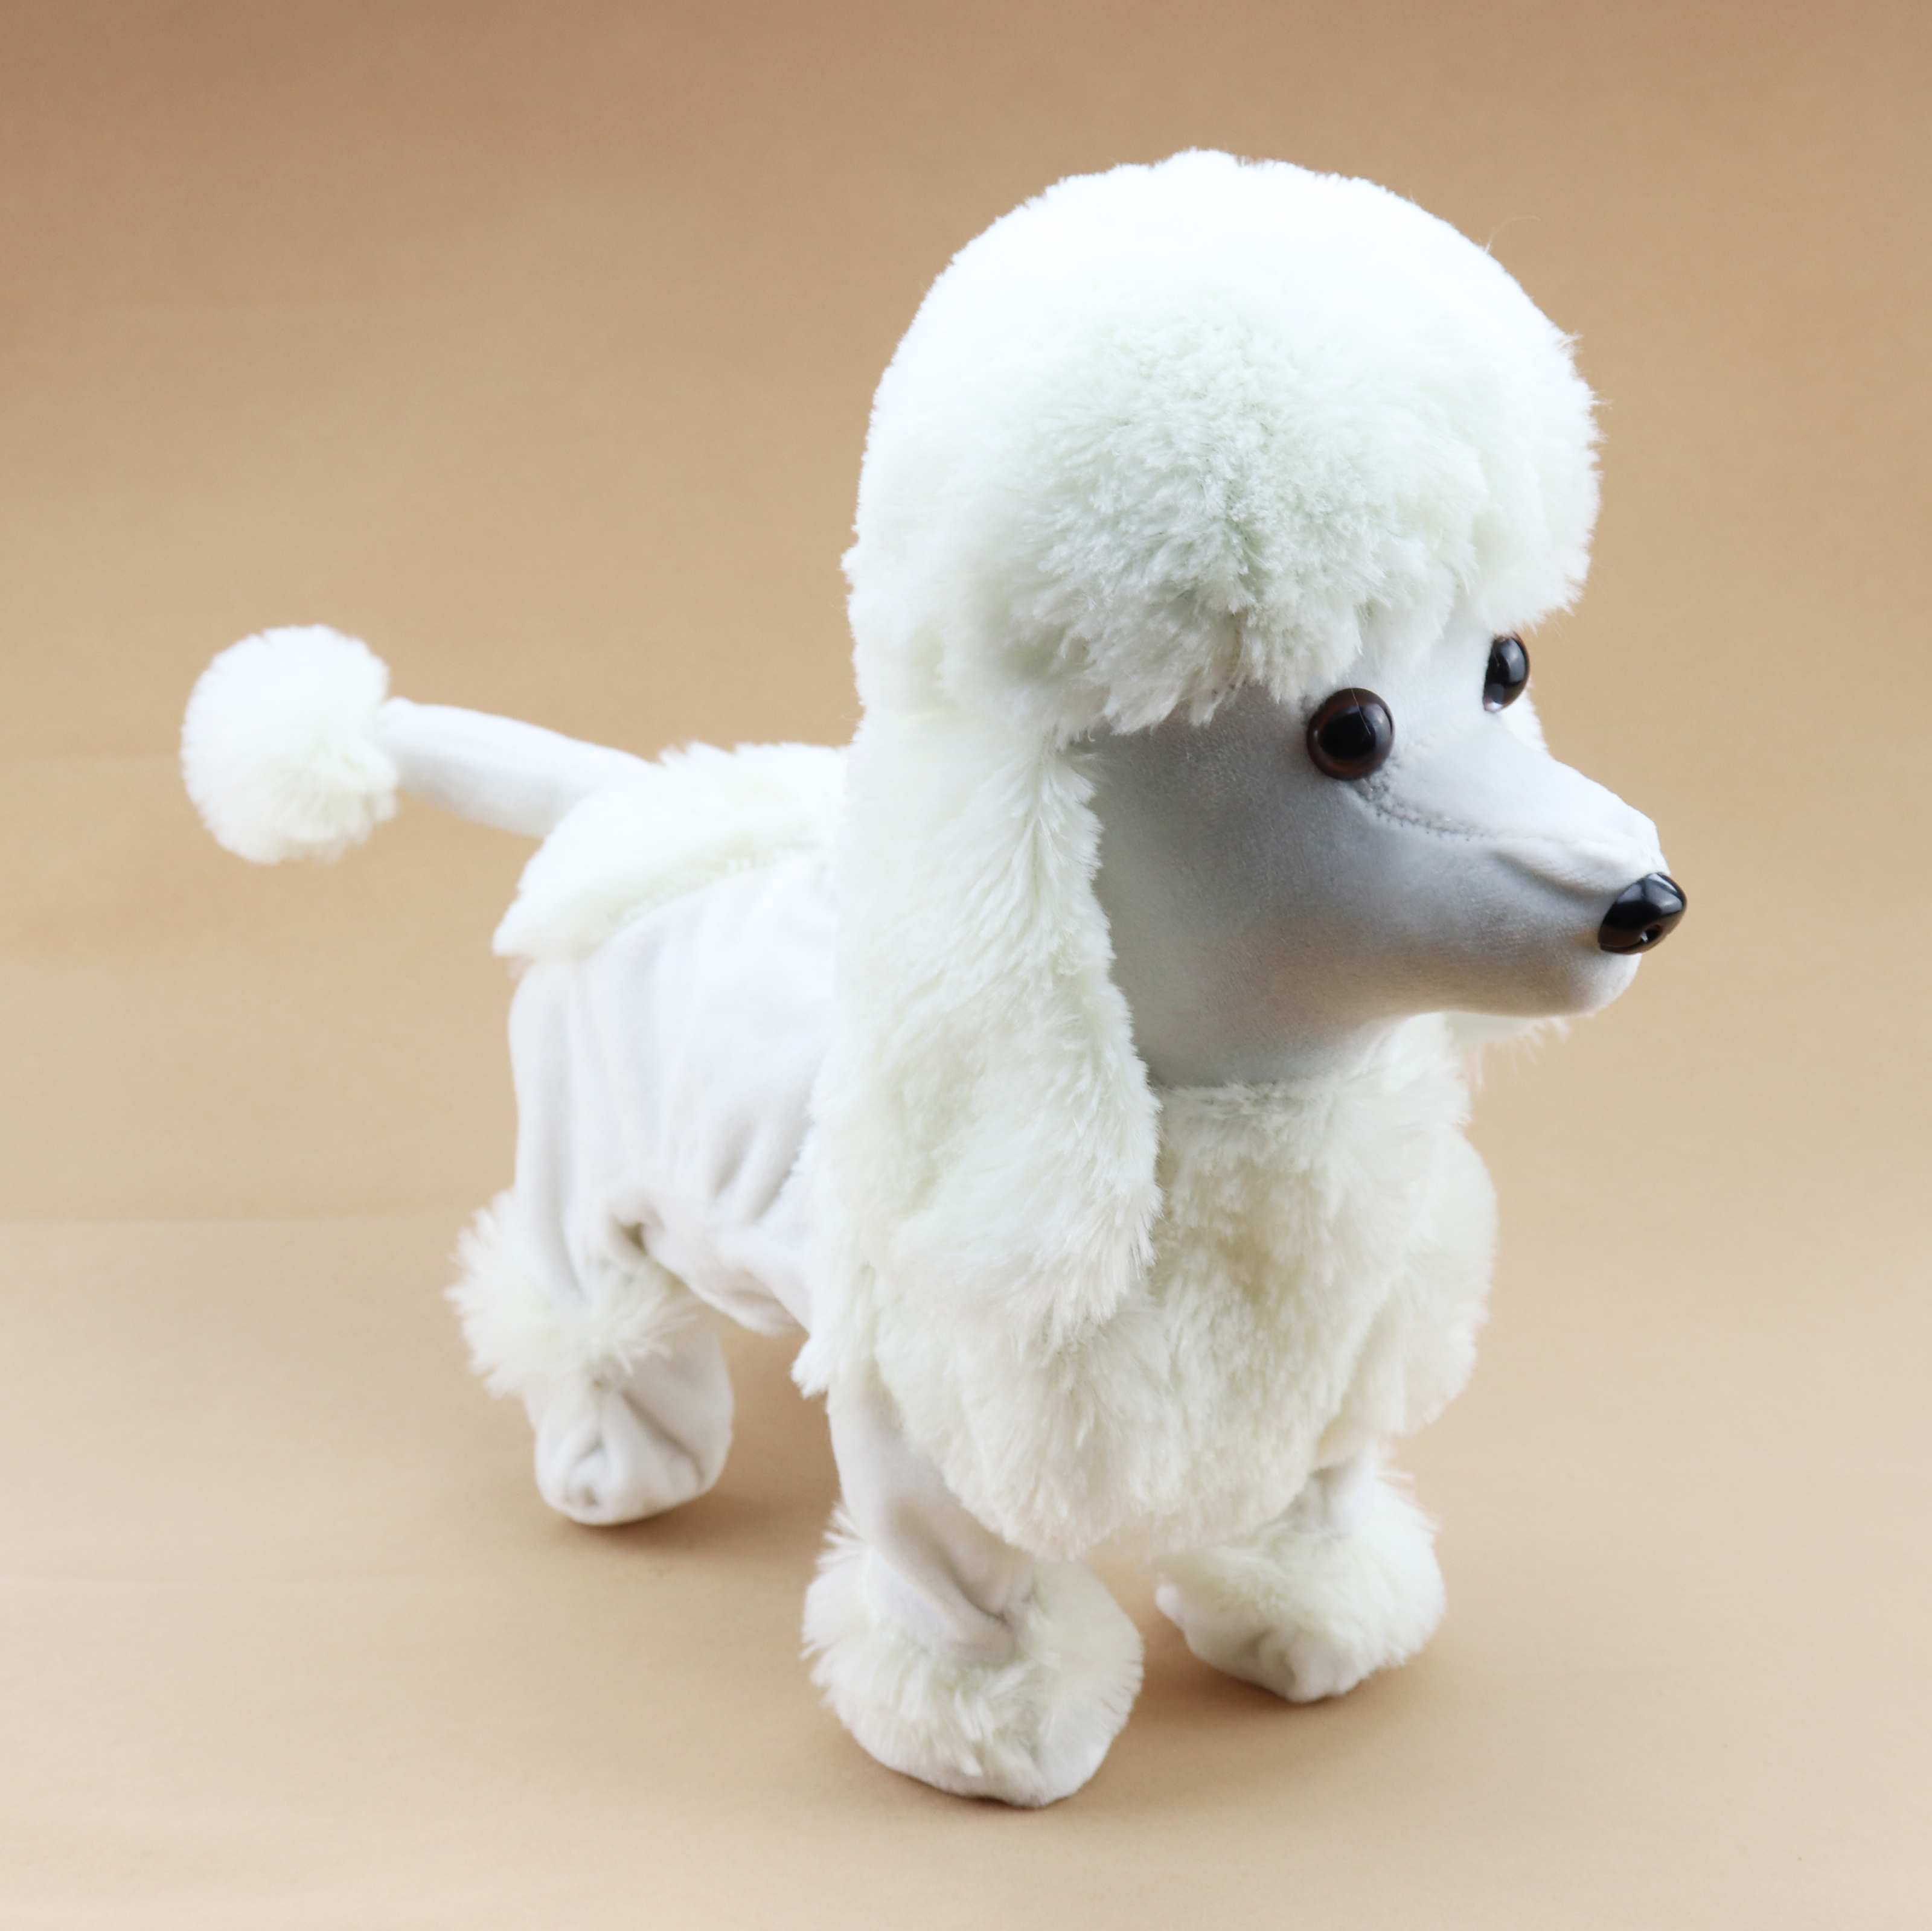 Senjohn Big Stuffed Animal Toy White Walking Dancing Poodle Plush ... 48cbe2fb616a